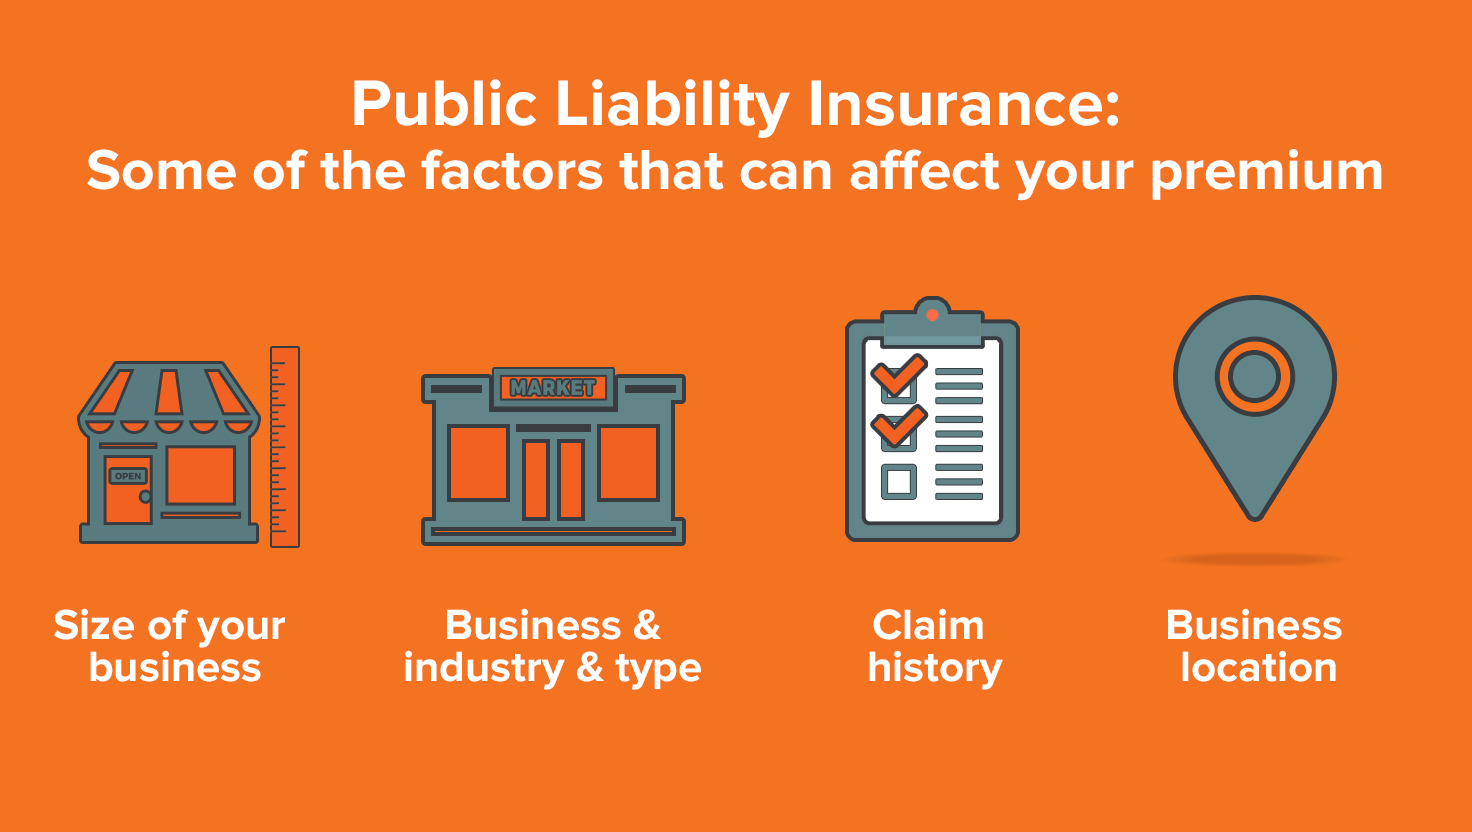 Is public liability insurance worth it?